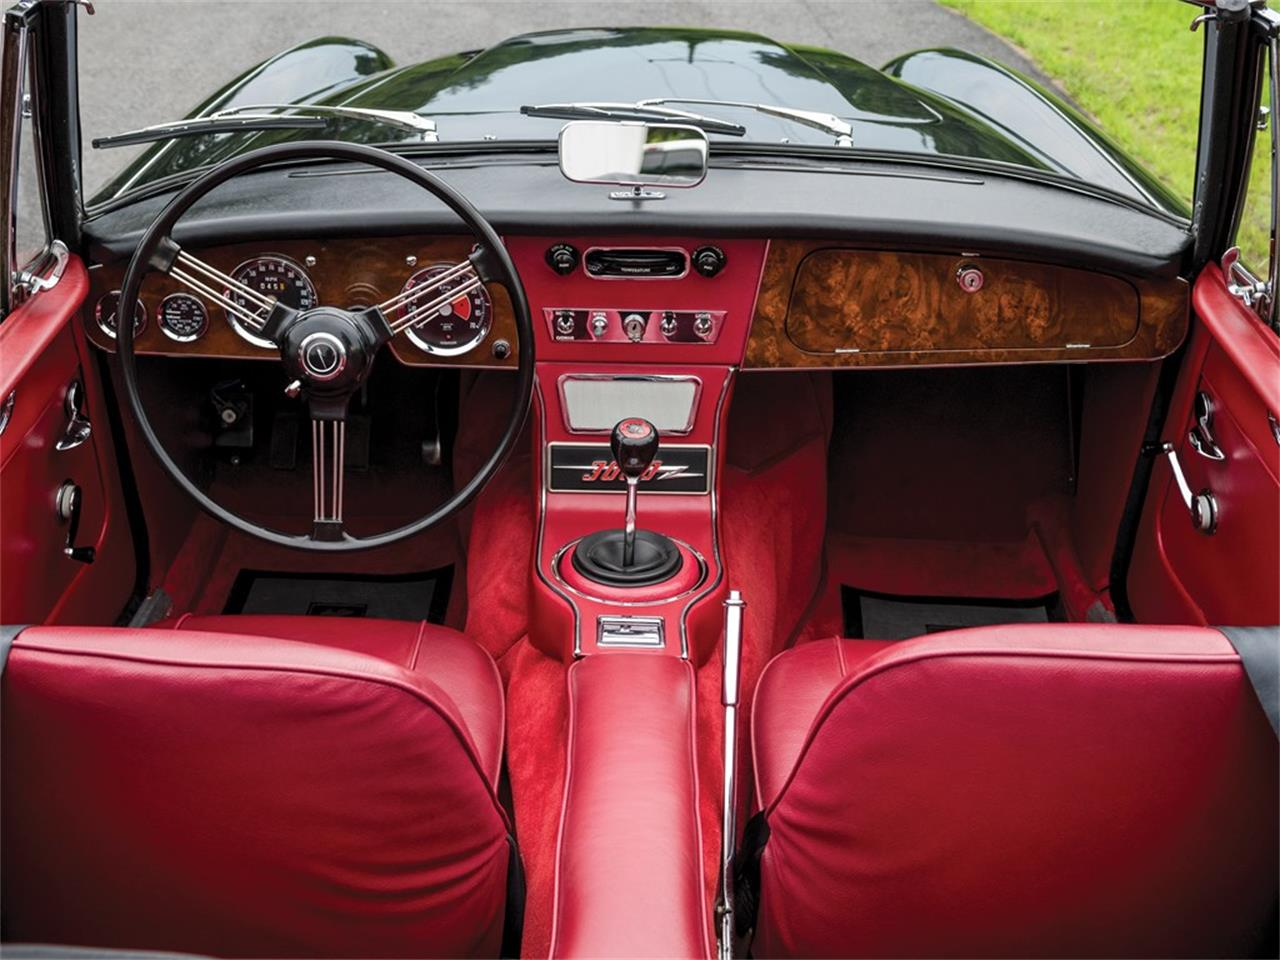 1964 Austin-Healey BJ8 (CC-1245201) for sale in Monterey, California